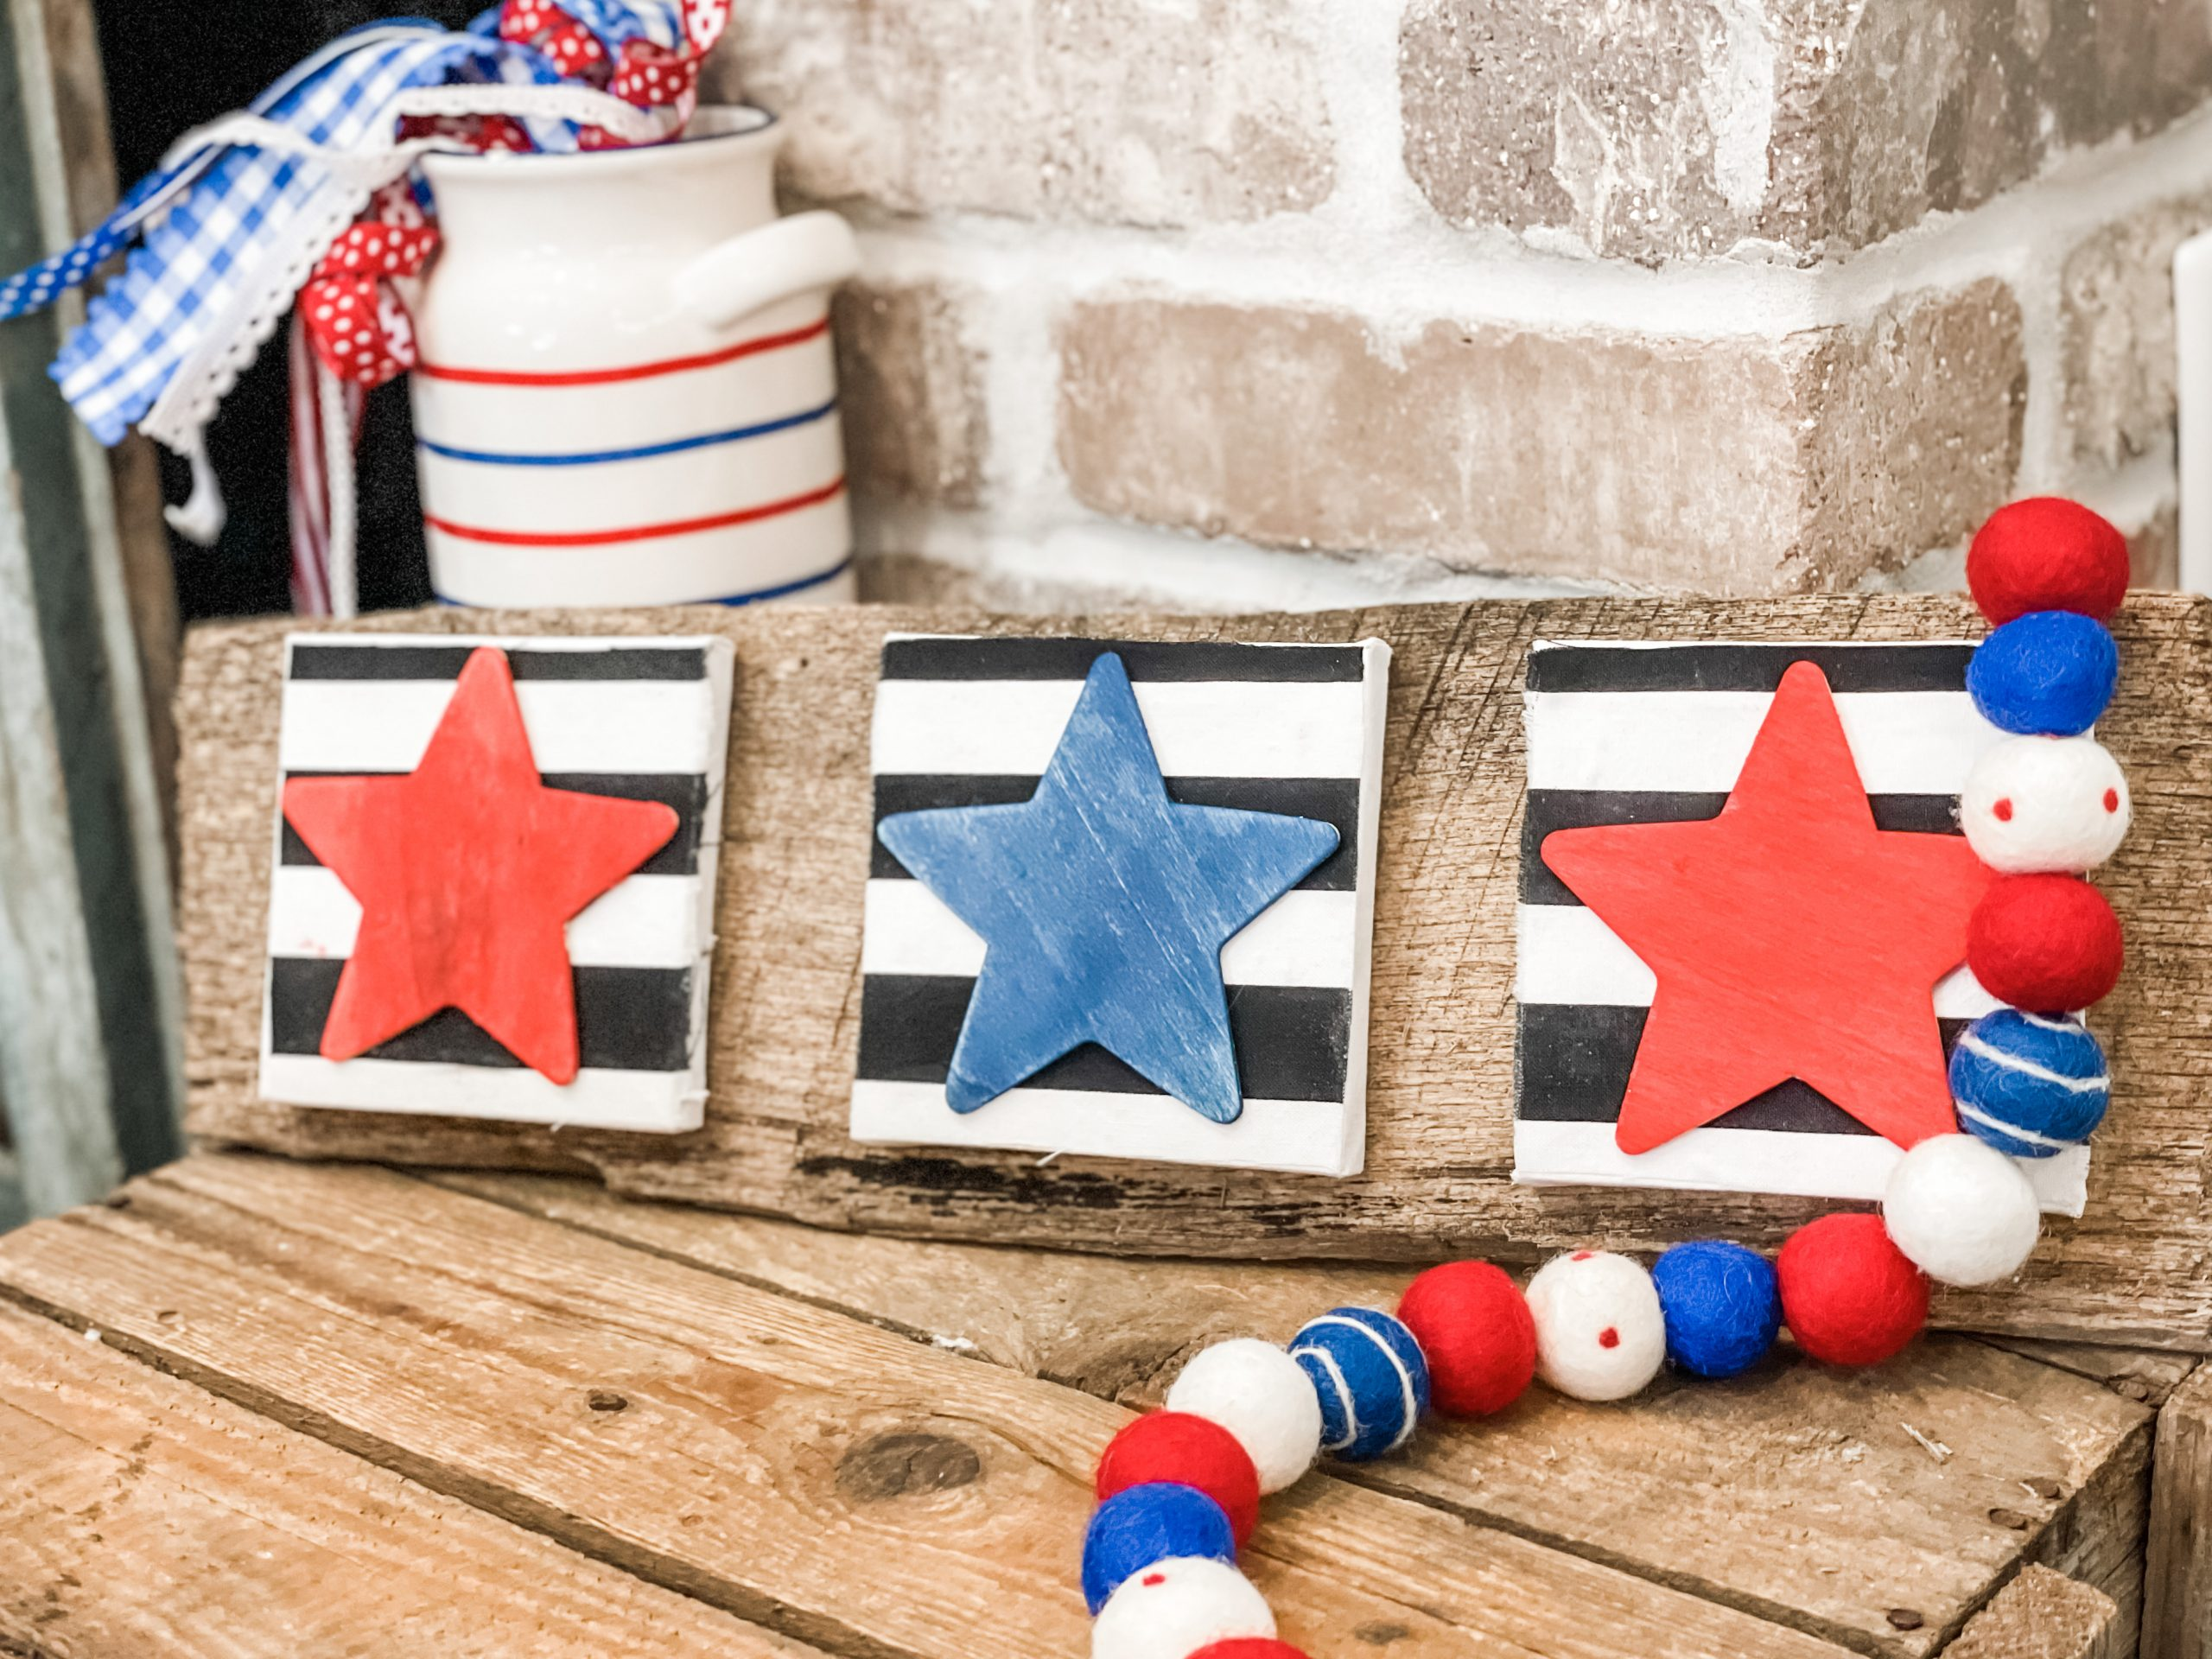 finished look of the stars and stripes sign